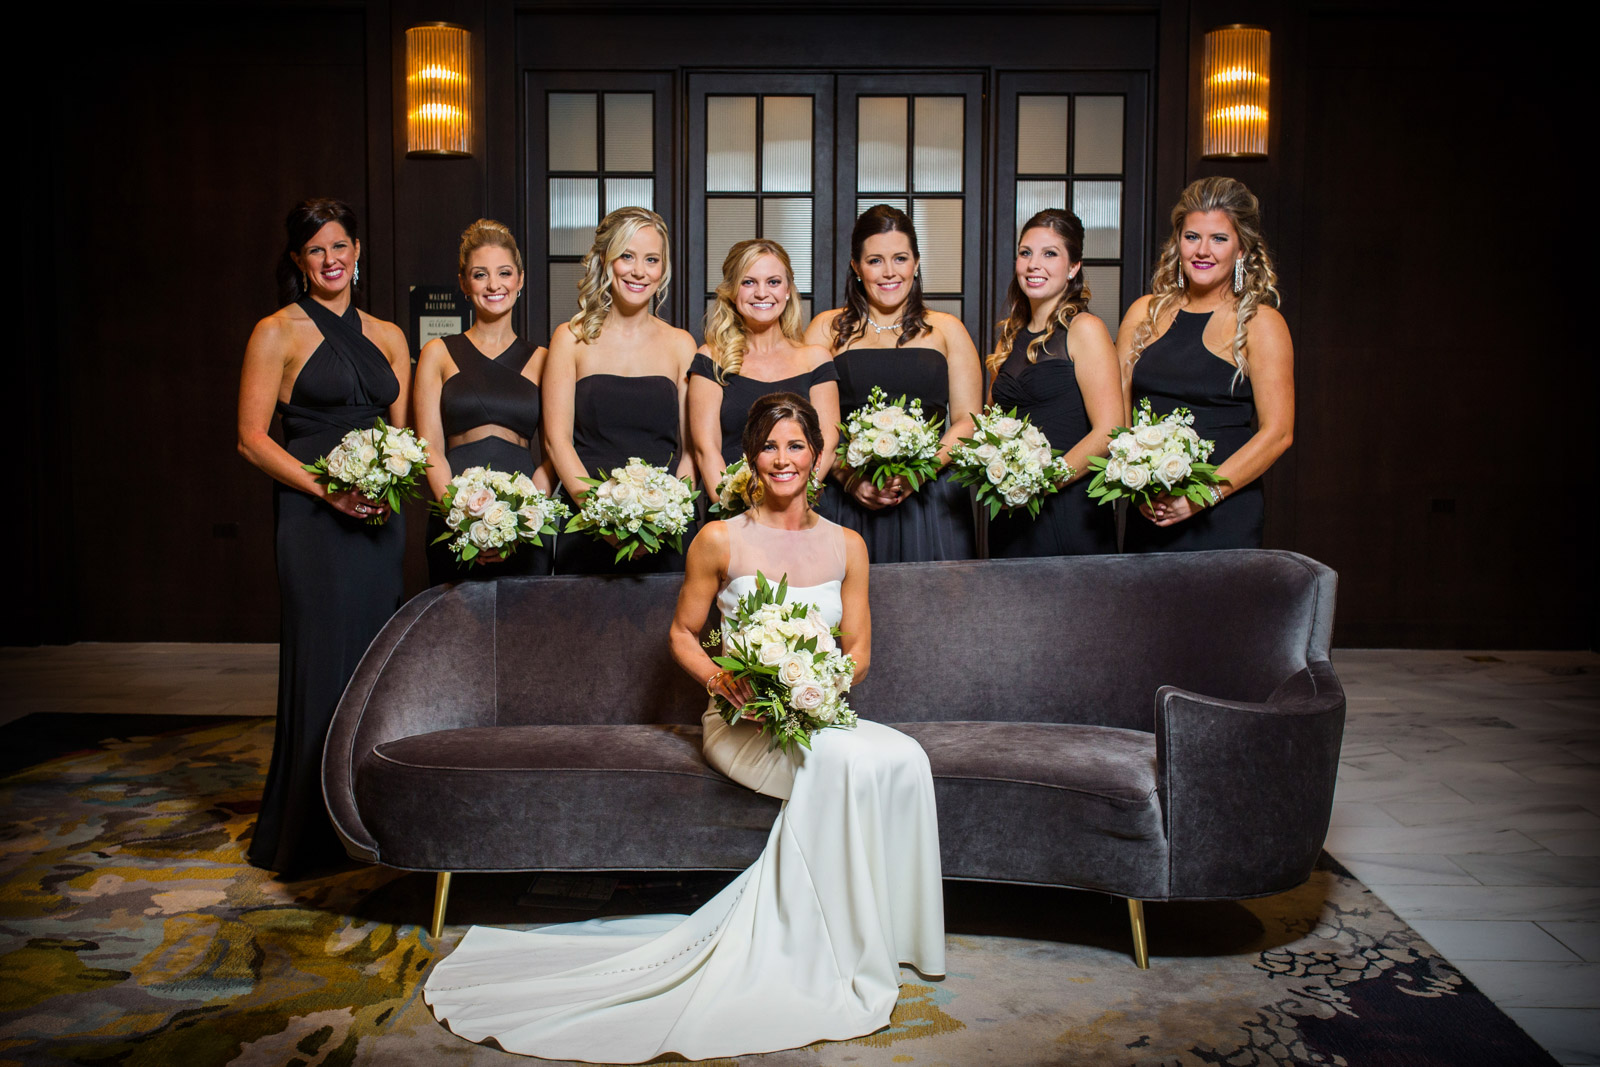 Hotel Allegro Wedding Portrait of wedding party bridemaids